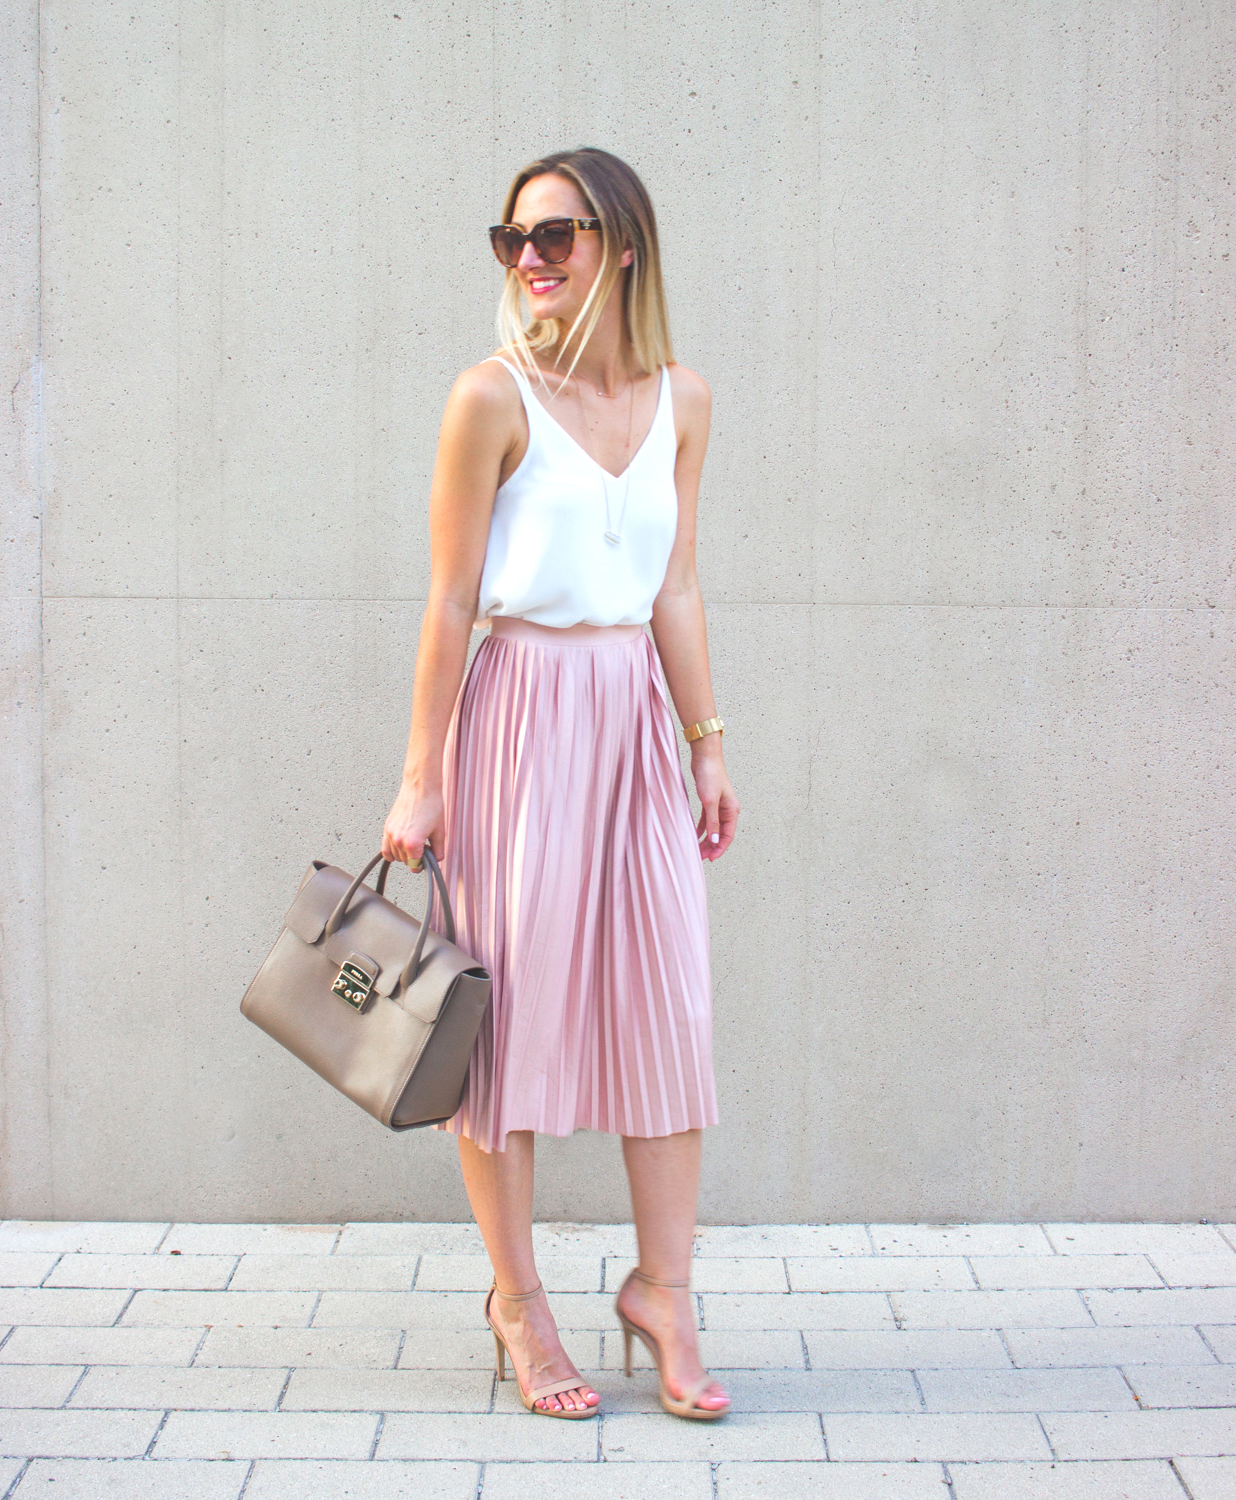 livvyland-blog-olivia-watson-topshop-blush-pink-pleated-high-waist-skirt-white-top-girly-feminine-outfit-3